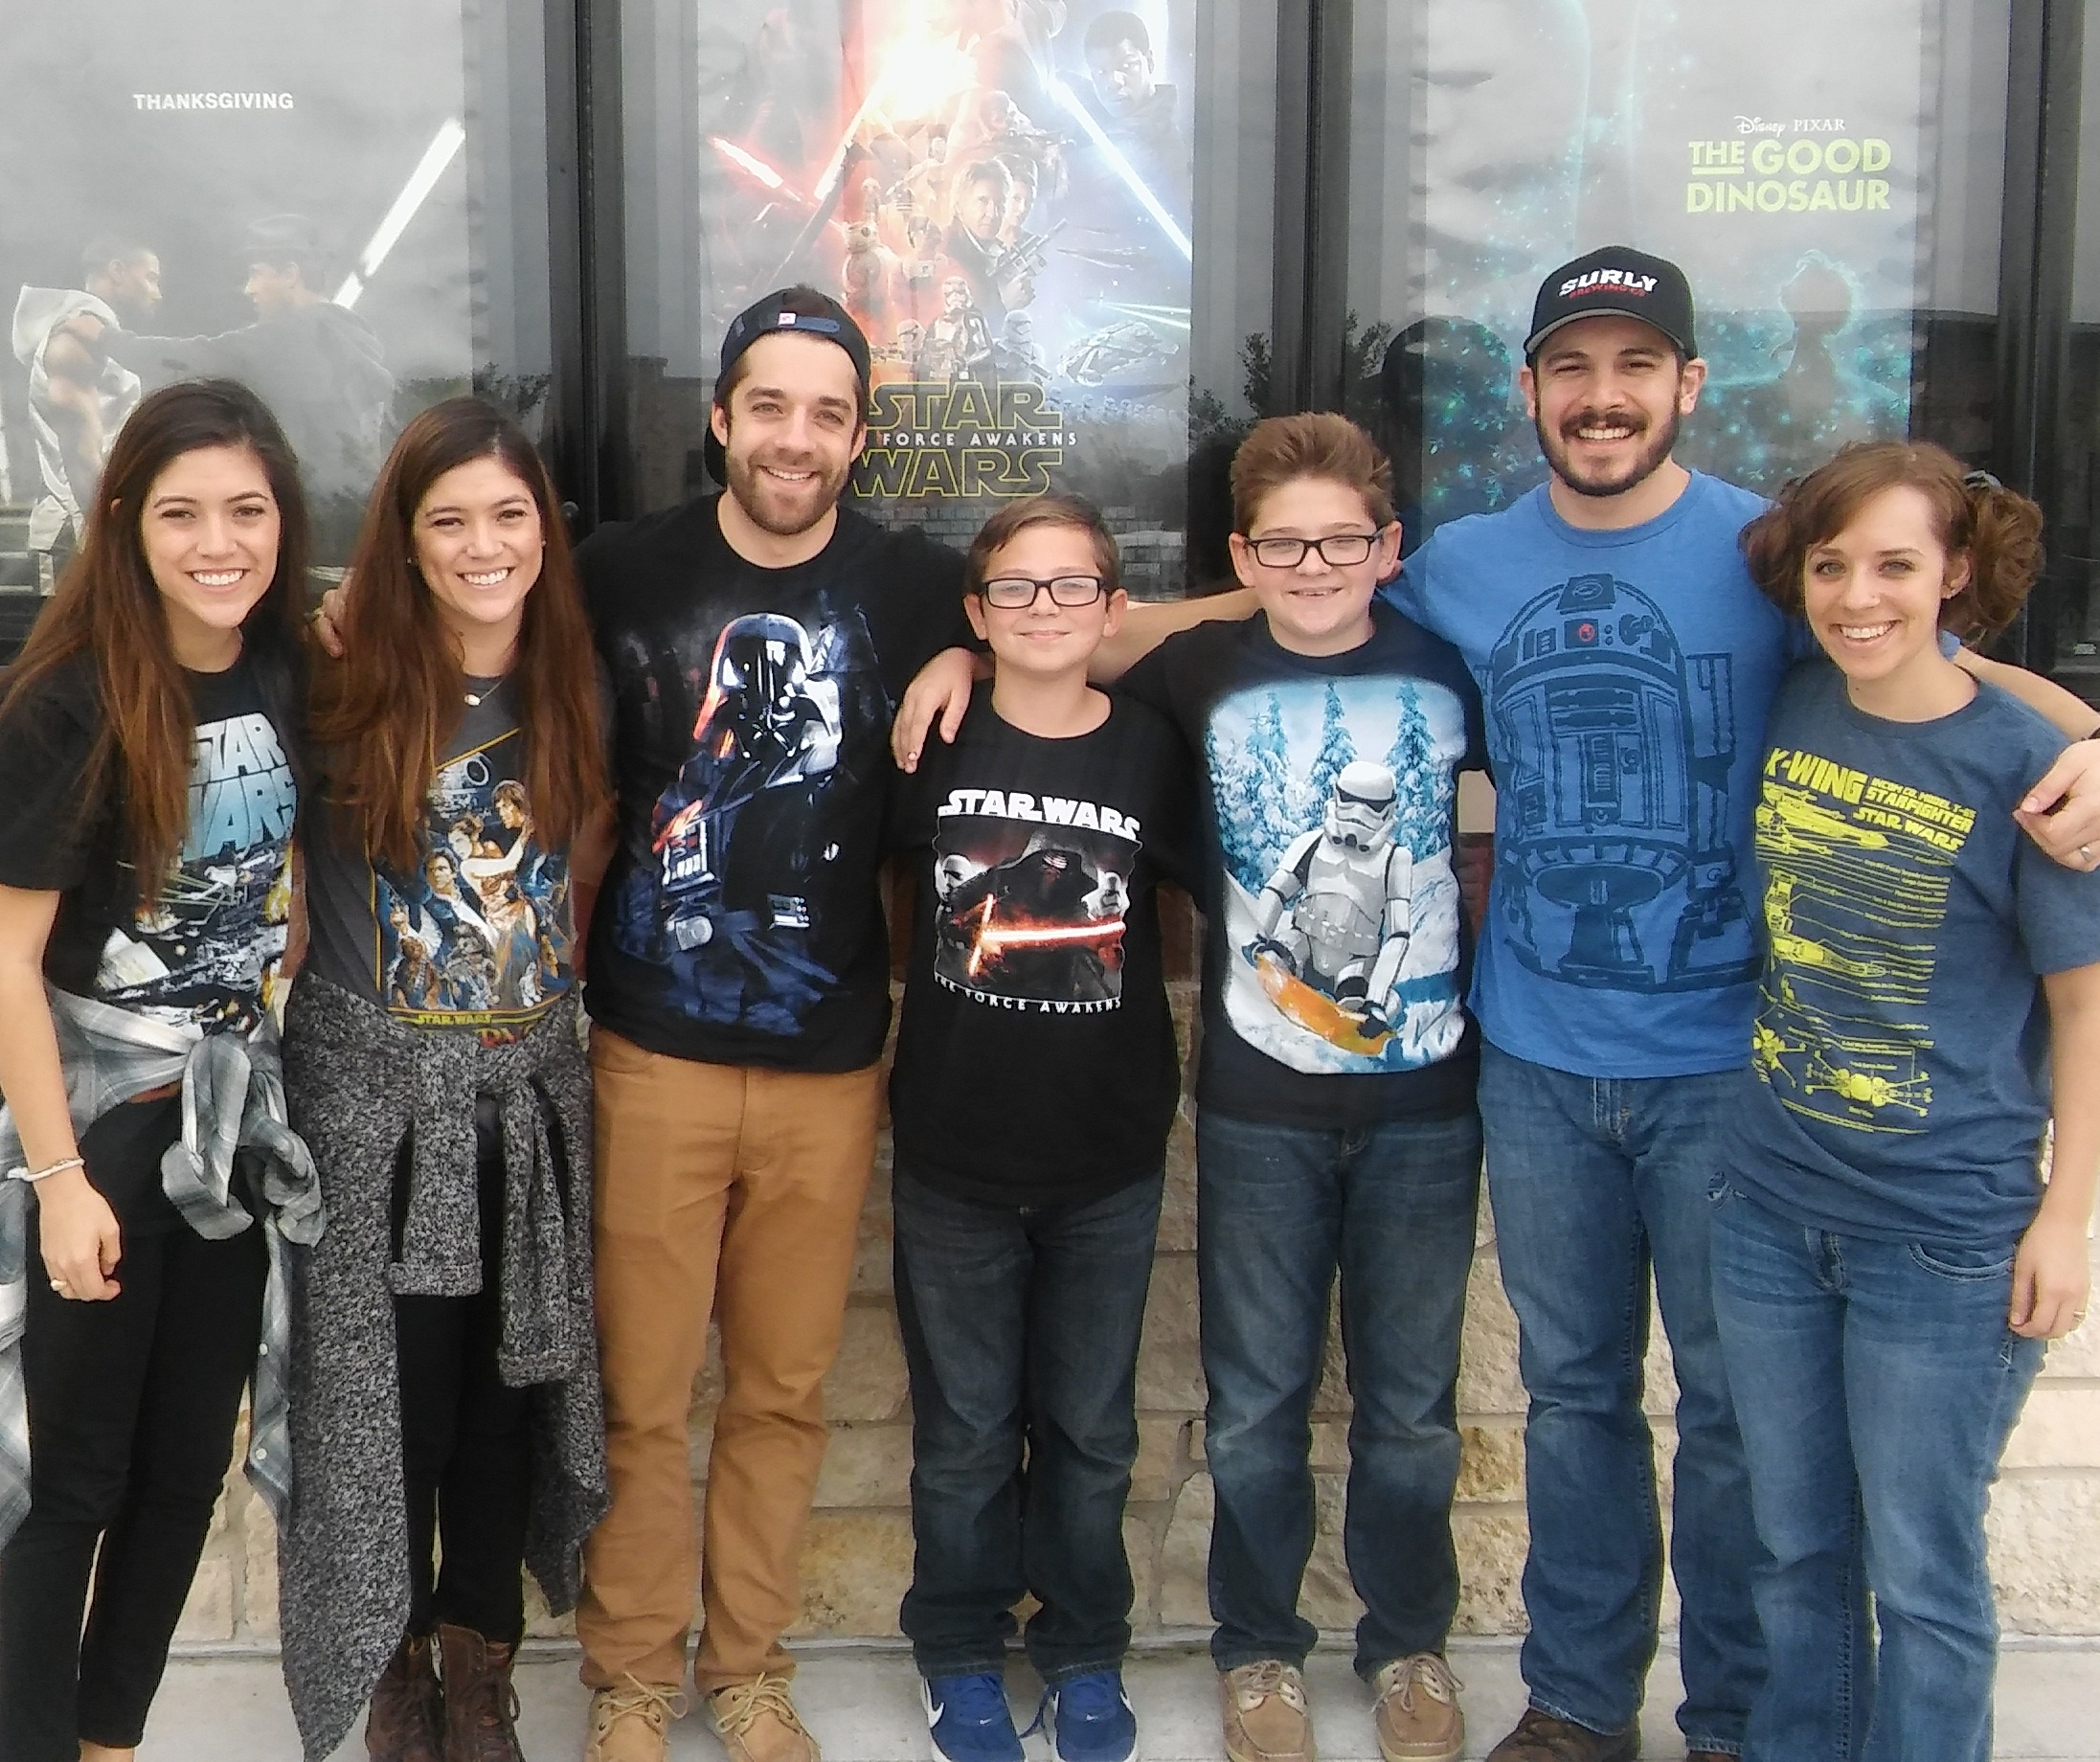 Star Wars with all of us kids